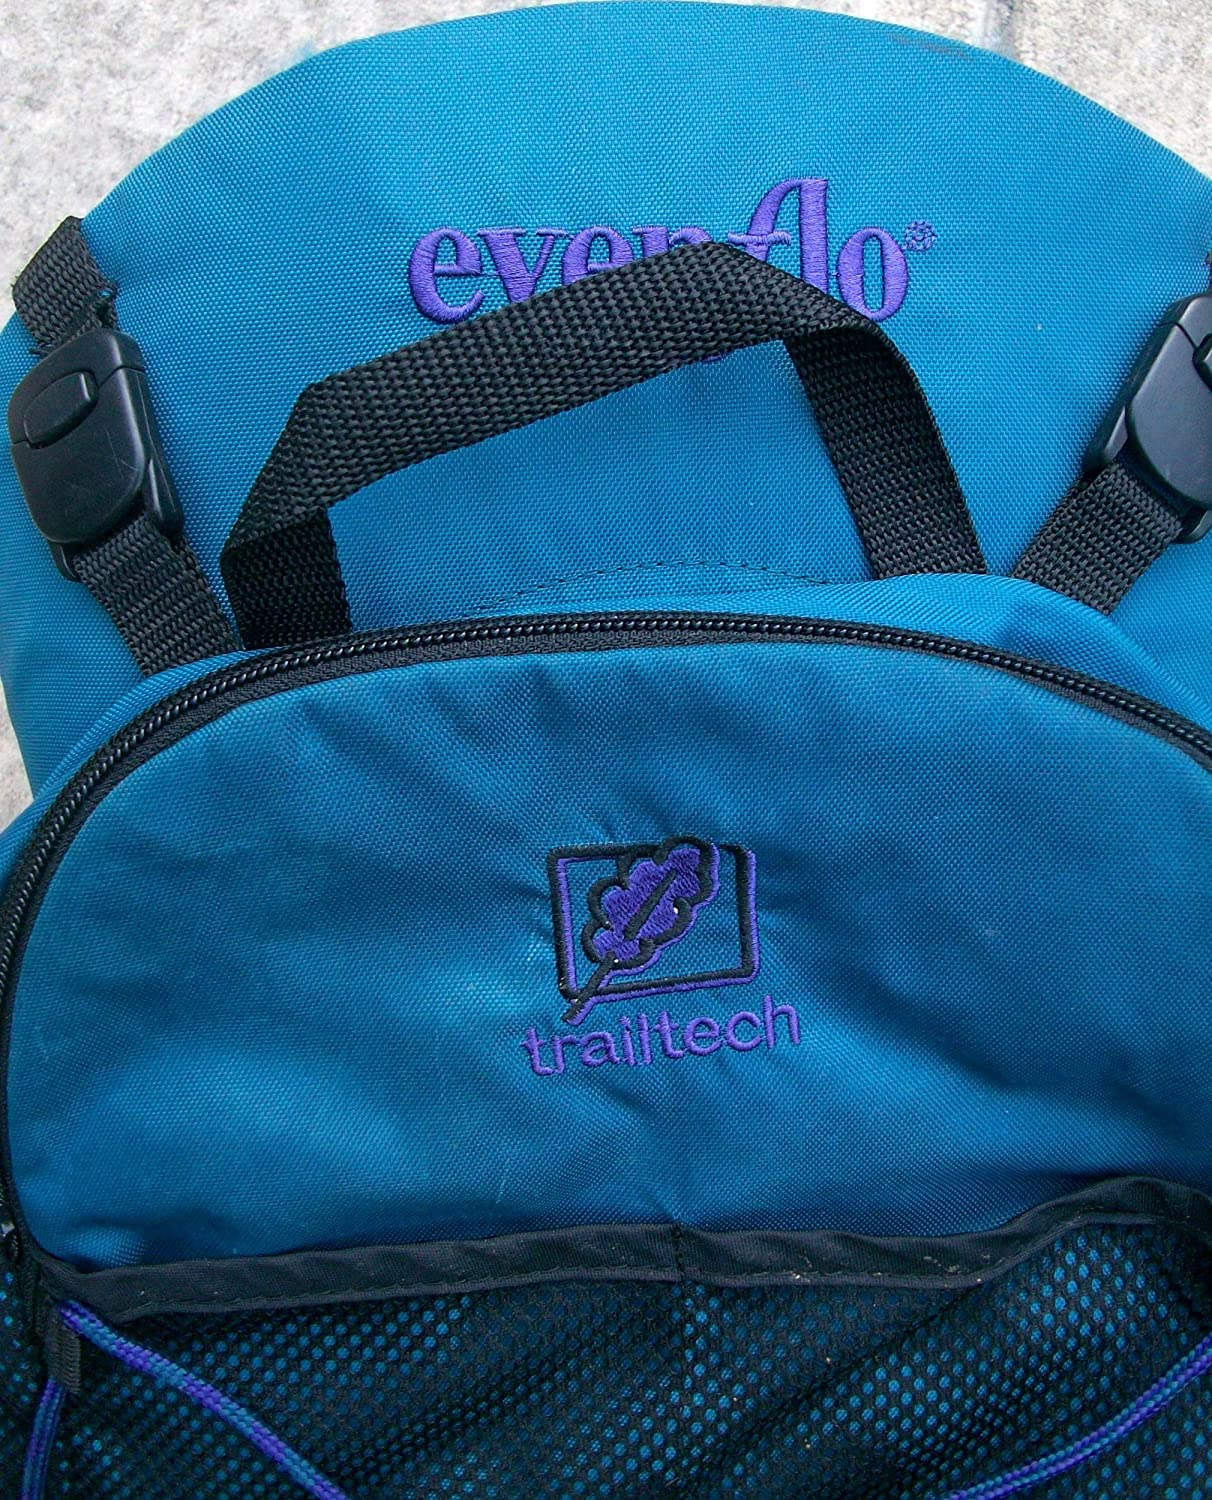 Evenflo Trailblazer Hiking Baby Backpack Carrier Fenix Toulouse